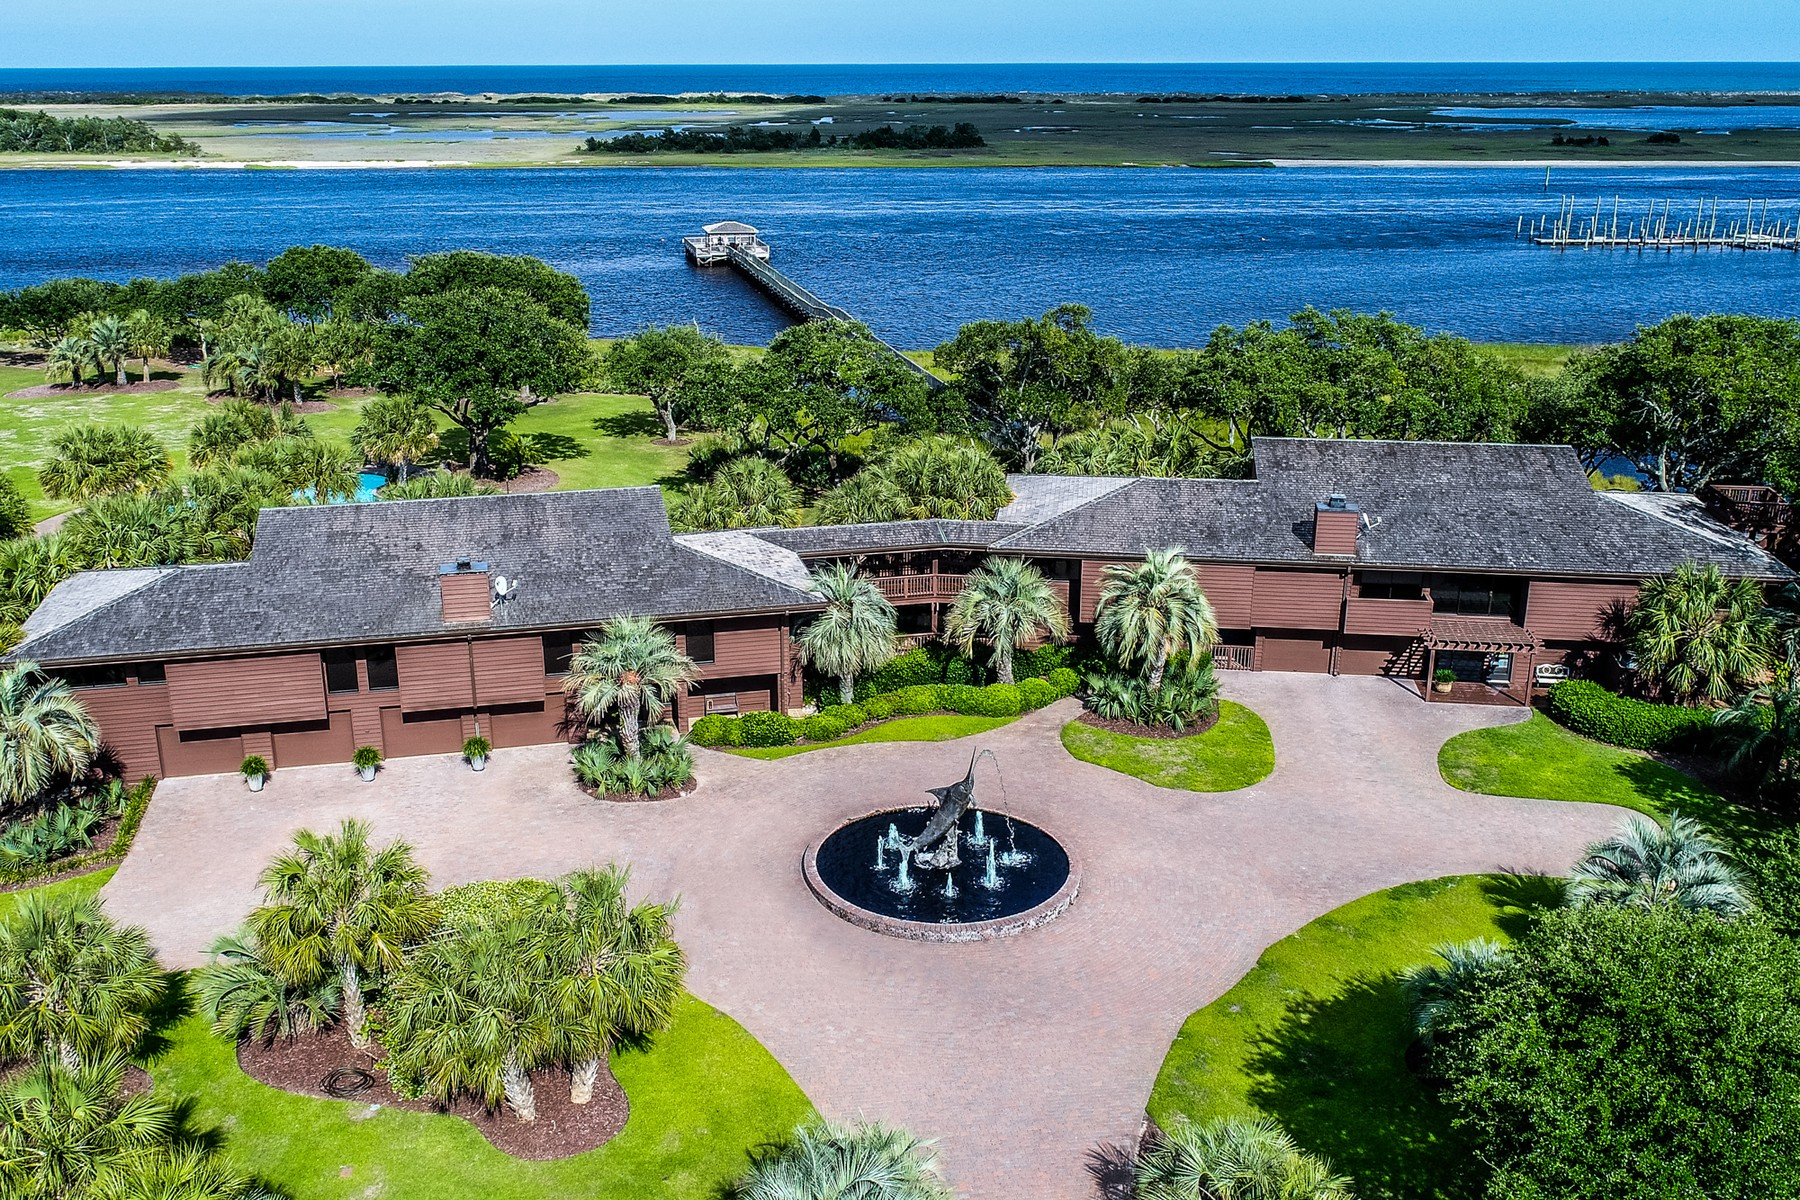 Single Family Home for Sale at The Sea Lilly - An Extraordinarily Private Estate 7422 Sea Lilly Lane Wilmington, North Carolina 28409 United States